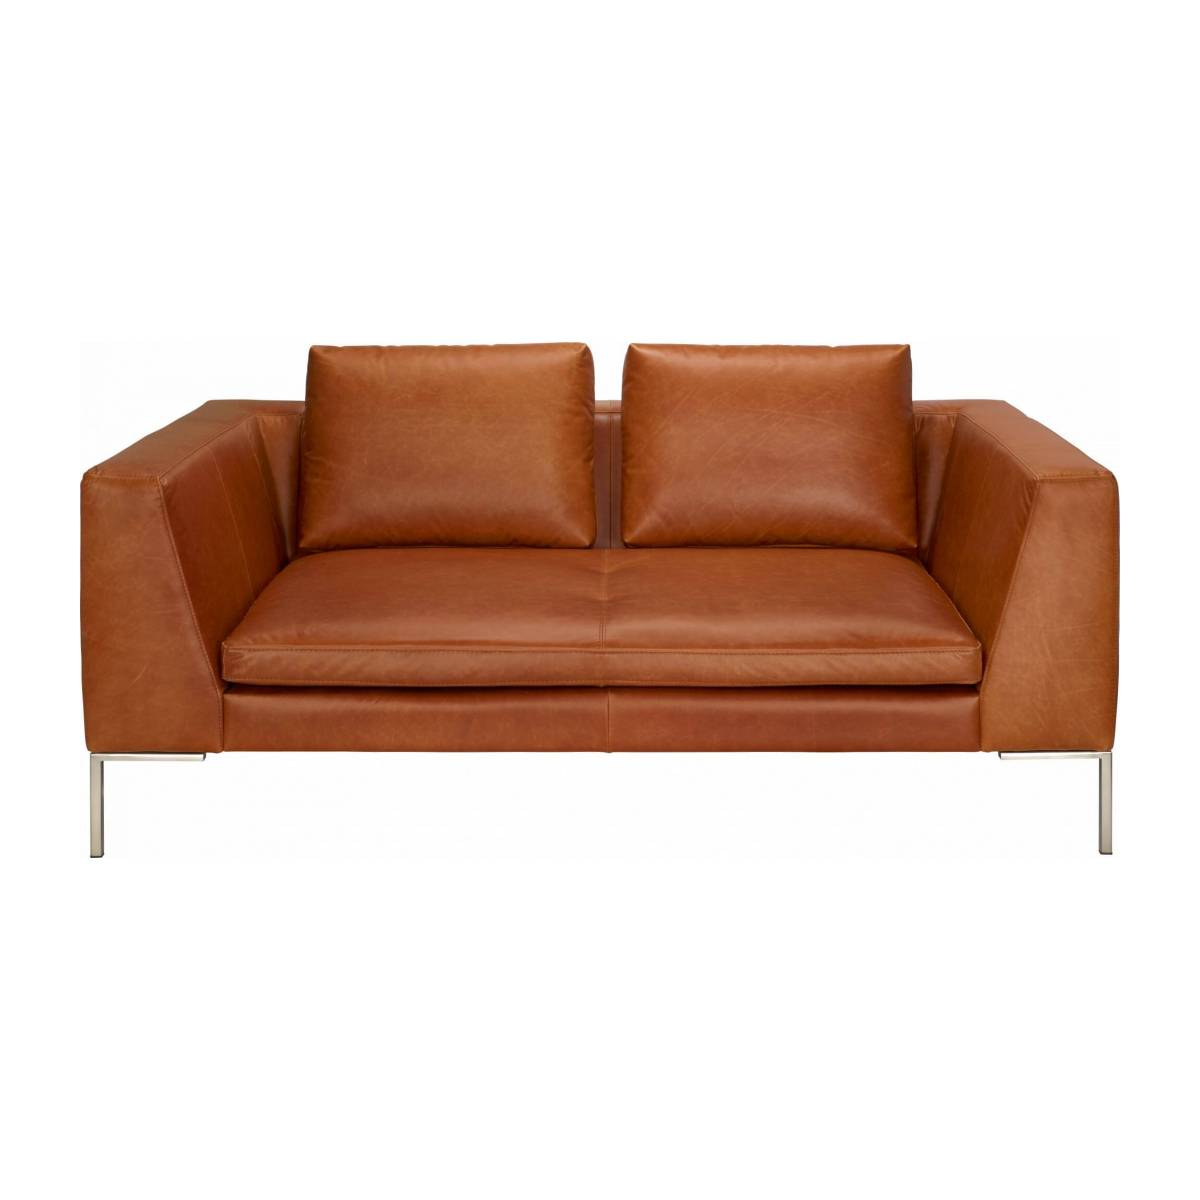 2 seater sofa in Vintage aniline leather, old chestnut n°2